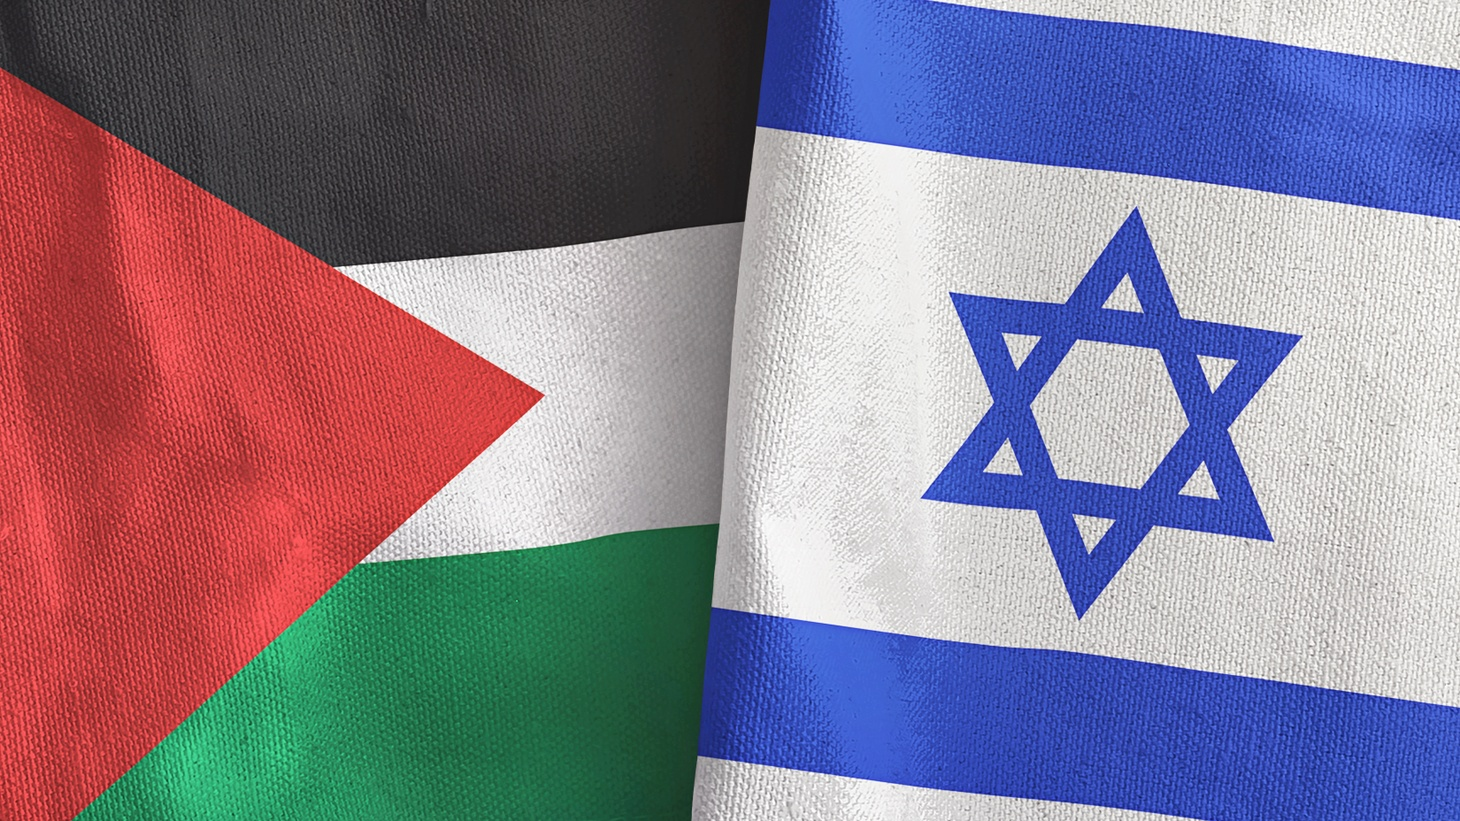 We hear from Israeli and Palestinian voices in Southern California regarding the conflict in the Middle East.